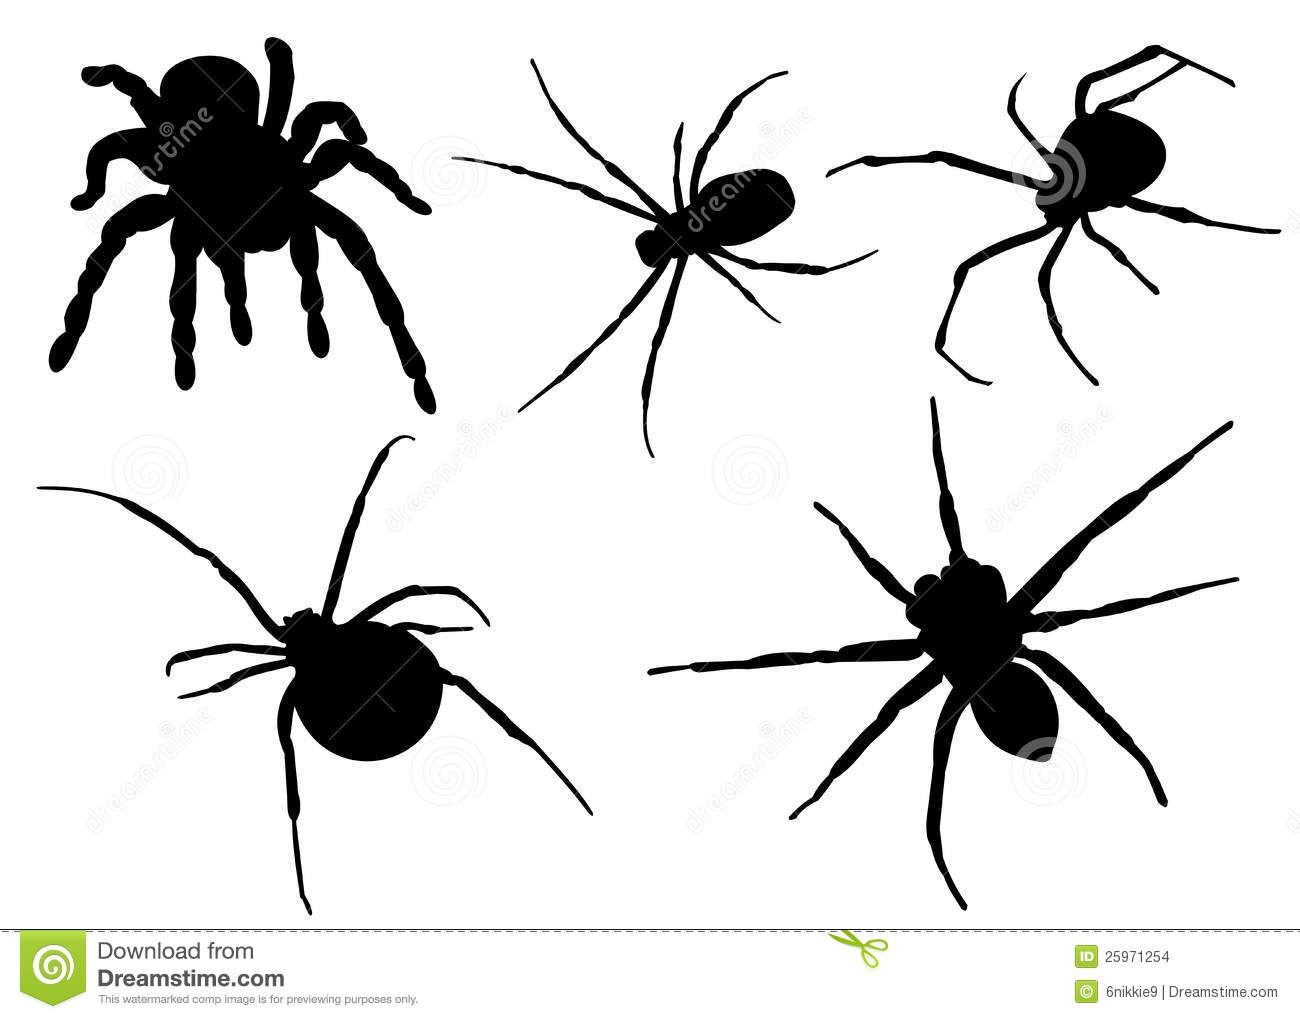 black widow spider silhouette - photo #38